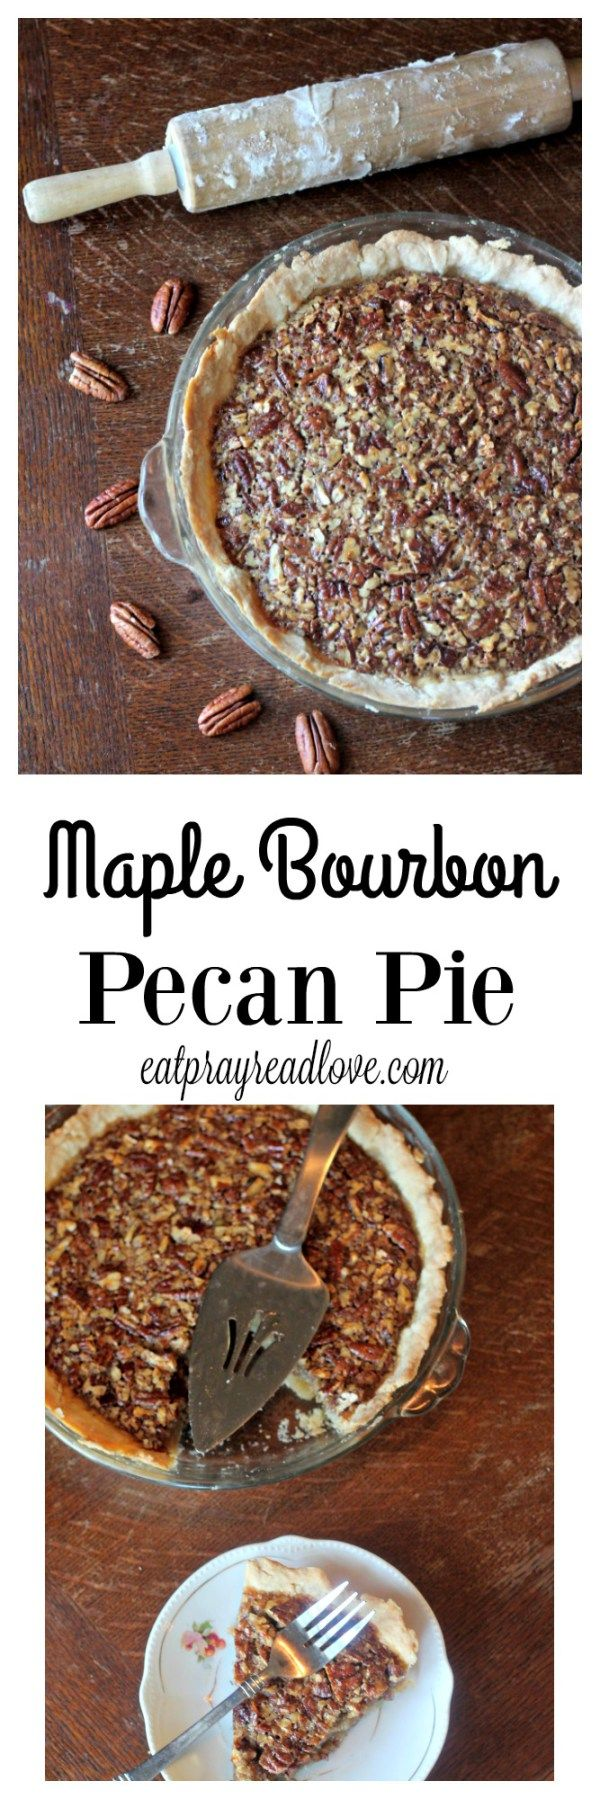 Maple Bourbon Pecan Pie- so delicious!